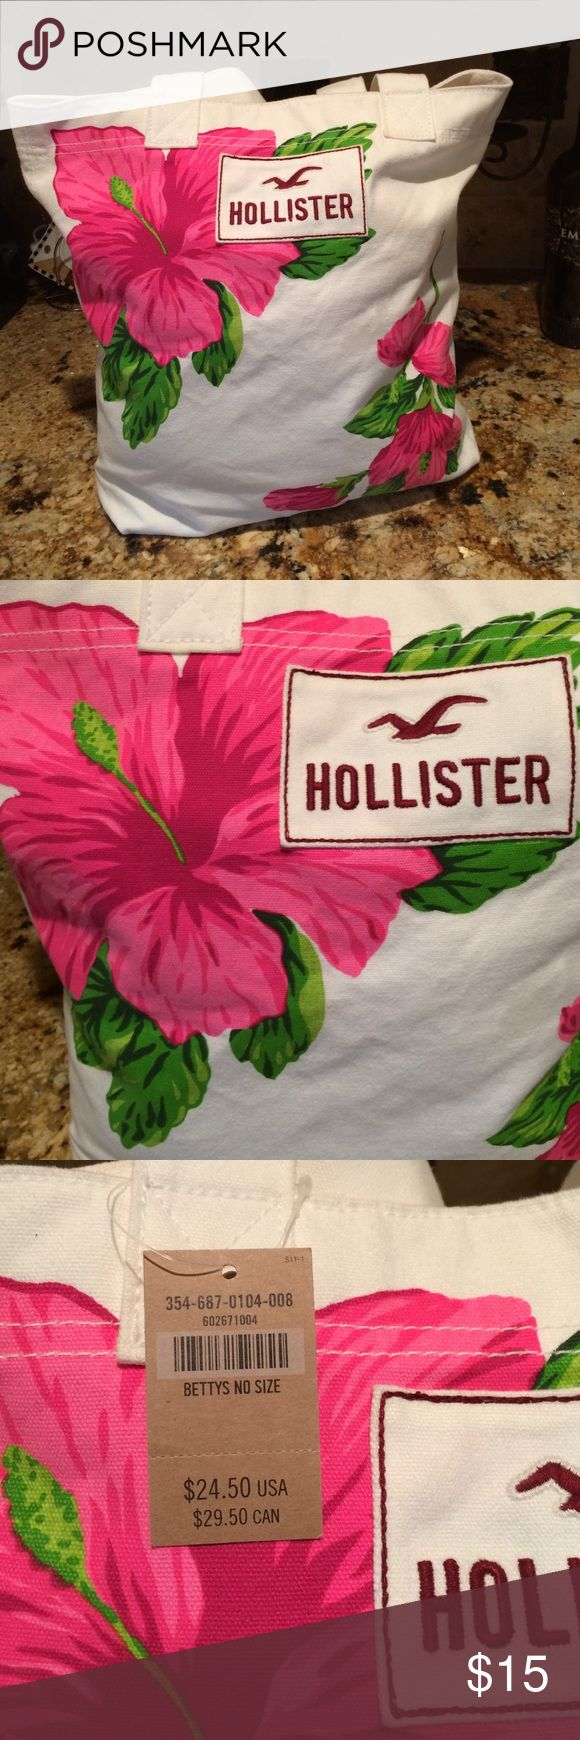 New with tags. Cute hollister tote bag New  Hollister tote bag . Very cute. Has one pocket inside. Classic tote bag design. Great for beach. Or school book's etc. Hollister Bags Totes